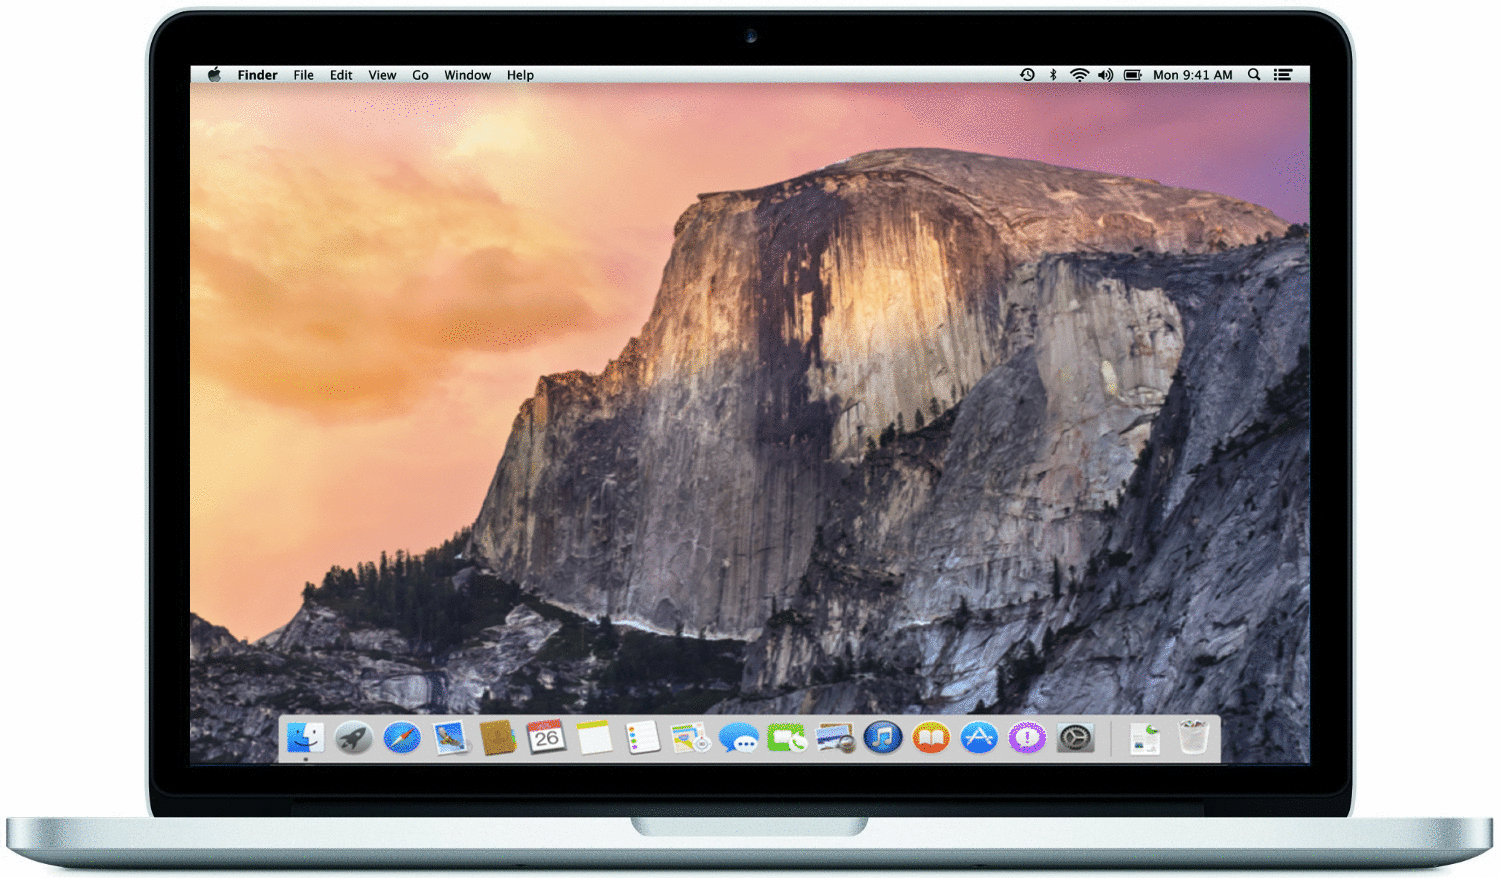 Apple MacBook Pro CTO 13.3 (Retina Display) 2.9 GHz Intel Core i5 8 GB RAM 256 GB PCIe SSD [Early 2015]